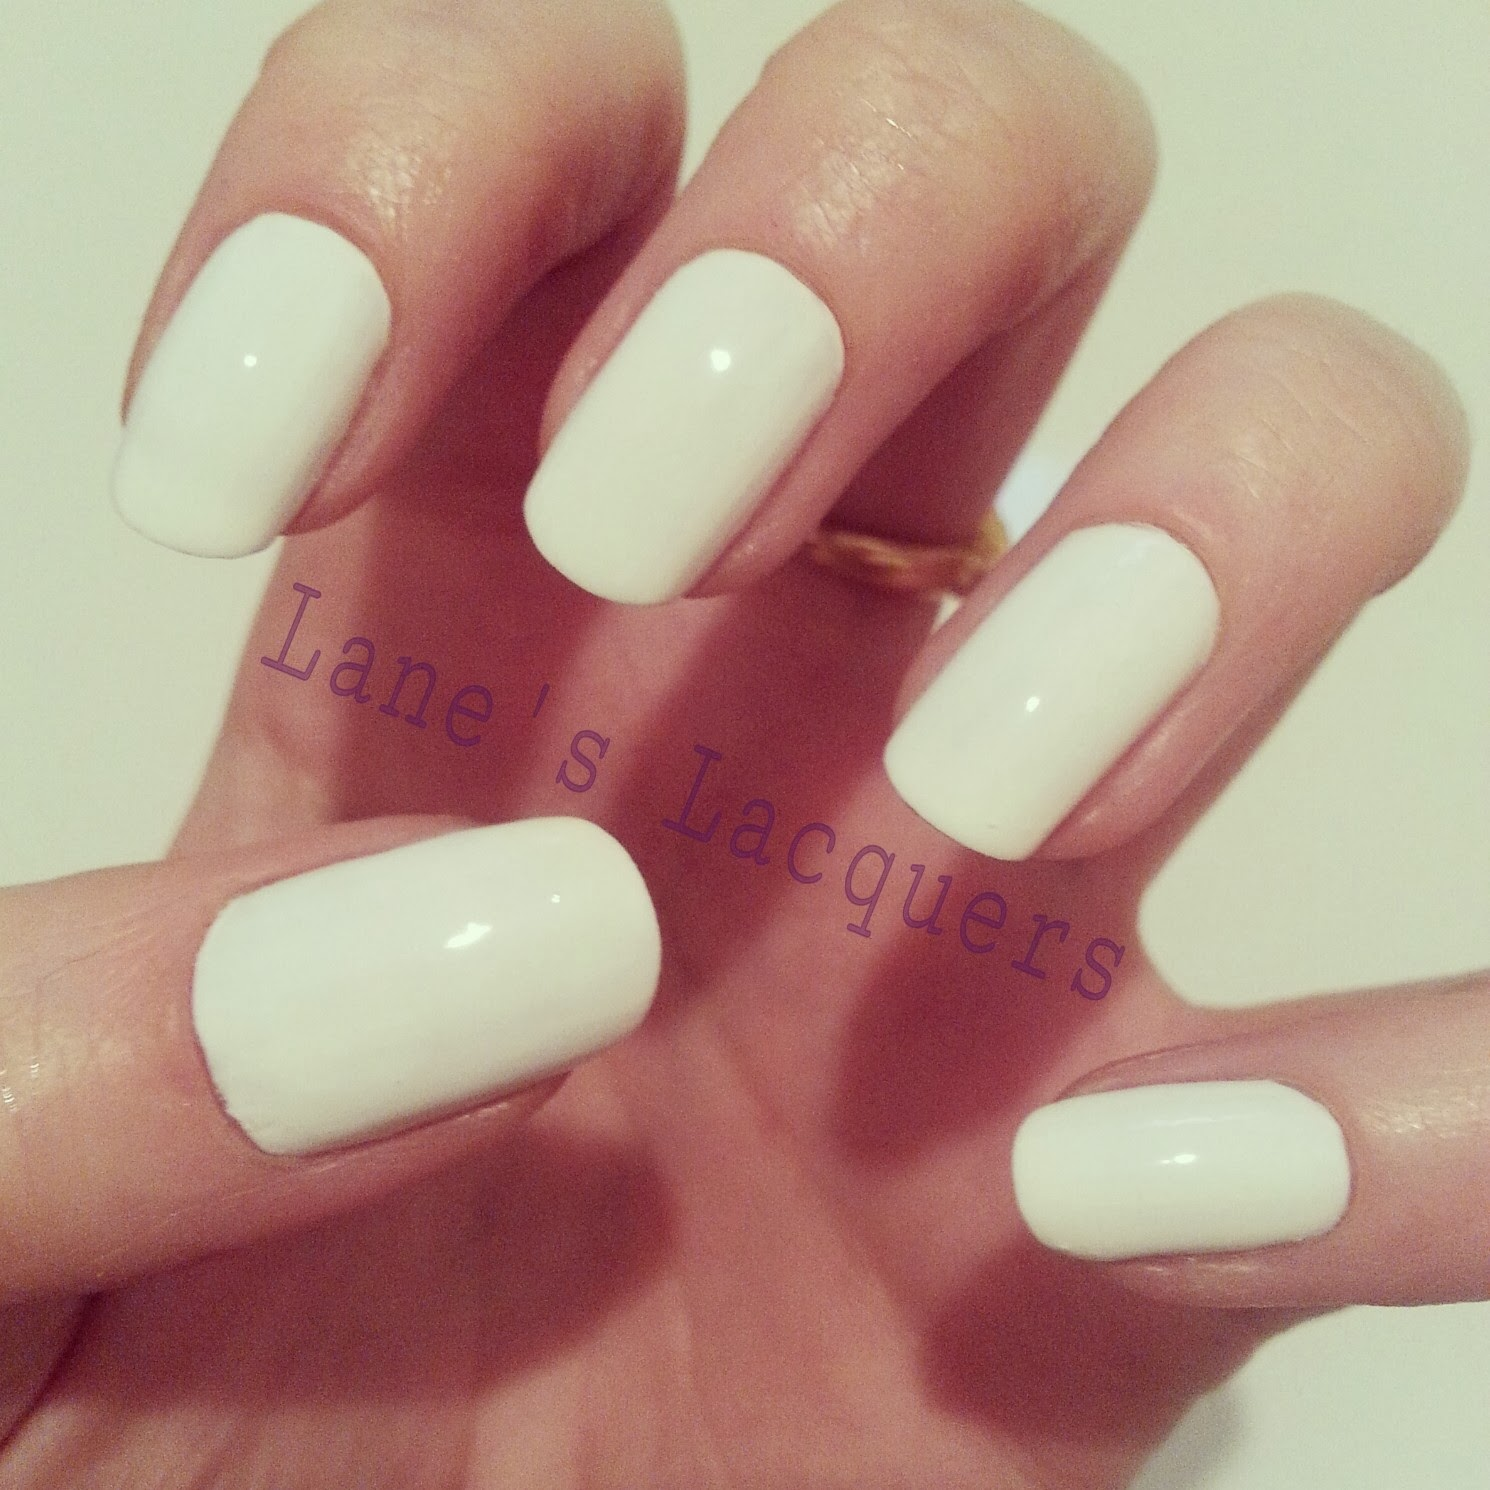 models-own-hypergels-white-light-manicure